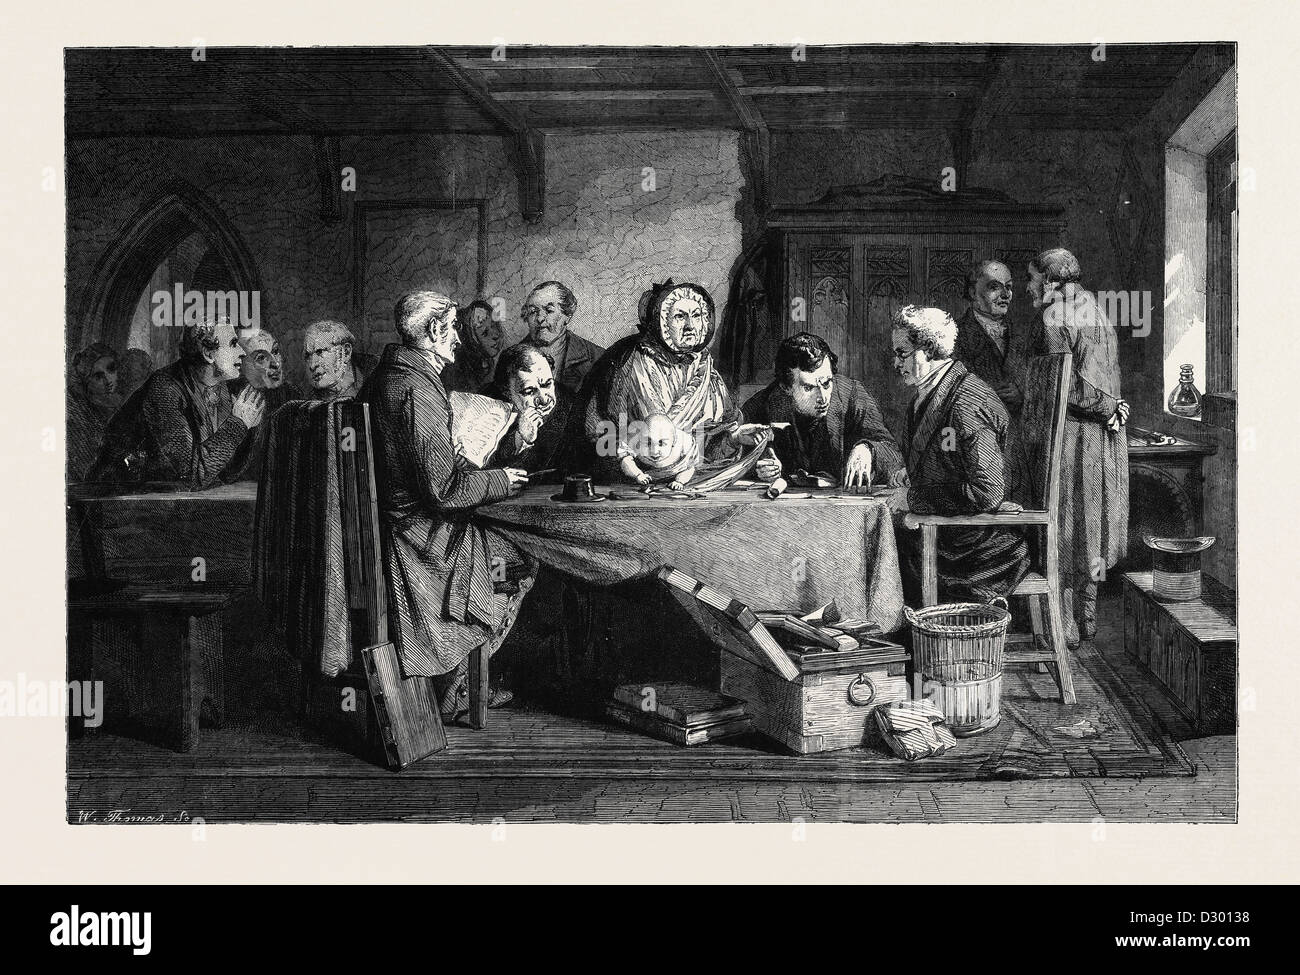 THE FOUNDLING BY G.B. O'NEILL IN THE NATIONAL GALLERY SOUTH KENSINGTON MUSEUM - Stock Image